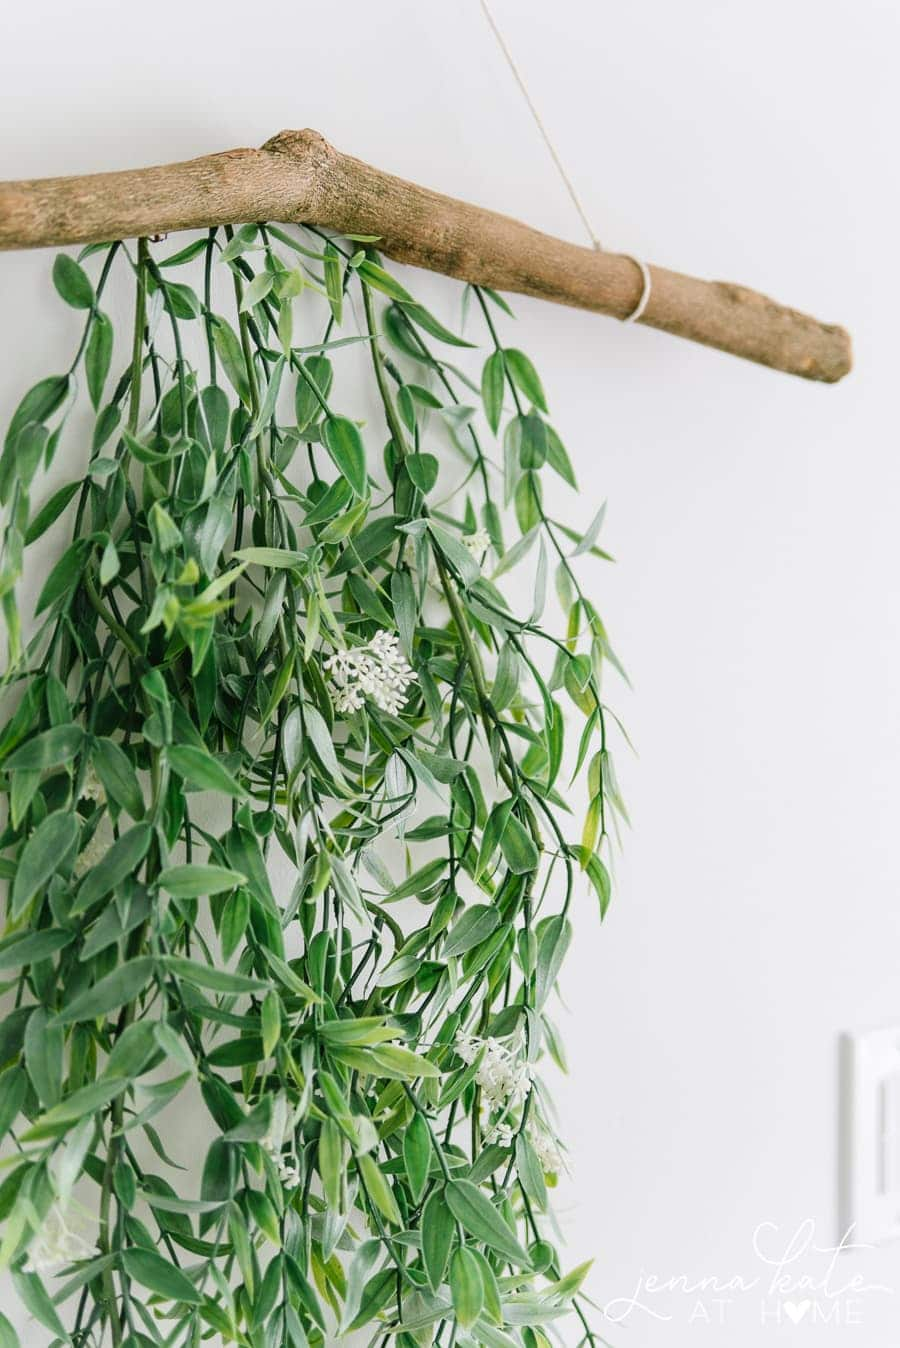 Close-up of leafy green garland hanging from branch